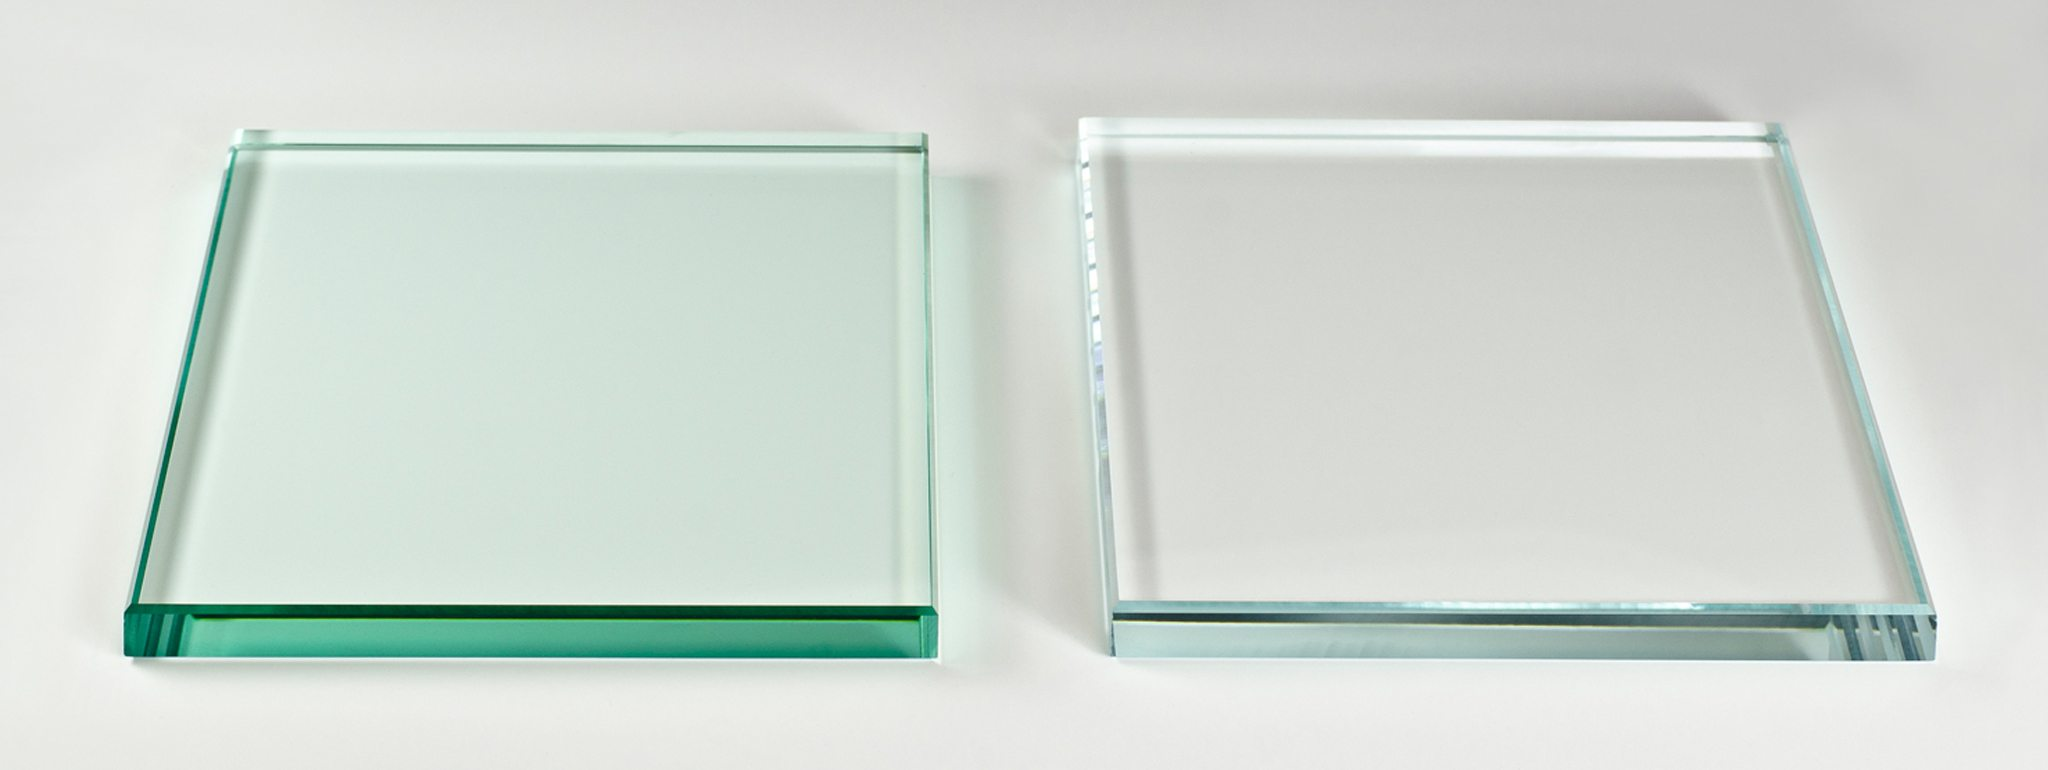 kiln formed cast glass types available at nathan allan glass studios